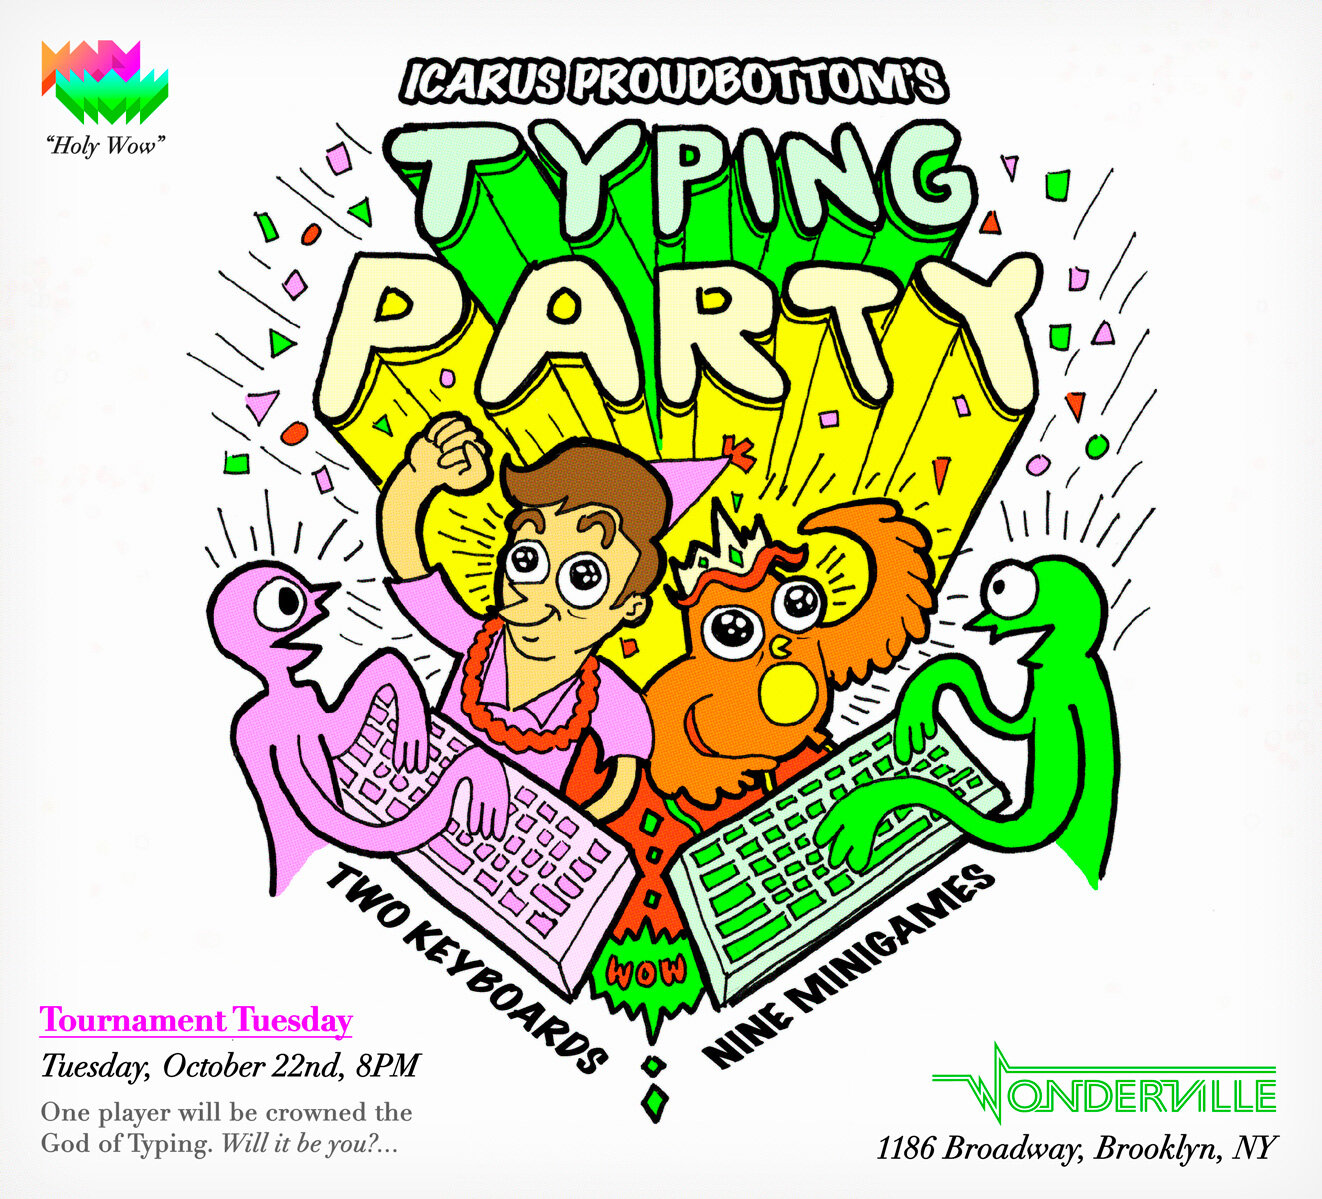 RSVP:  https://withfriends.co/event/2828352/tournament_tuesday_typing_party